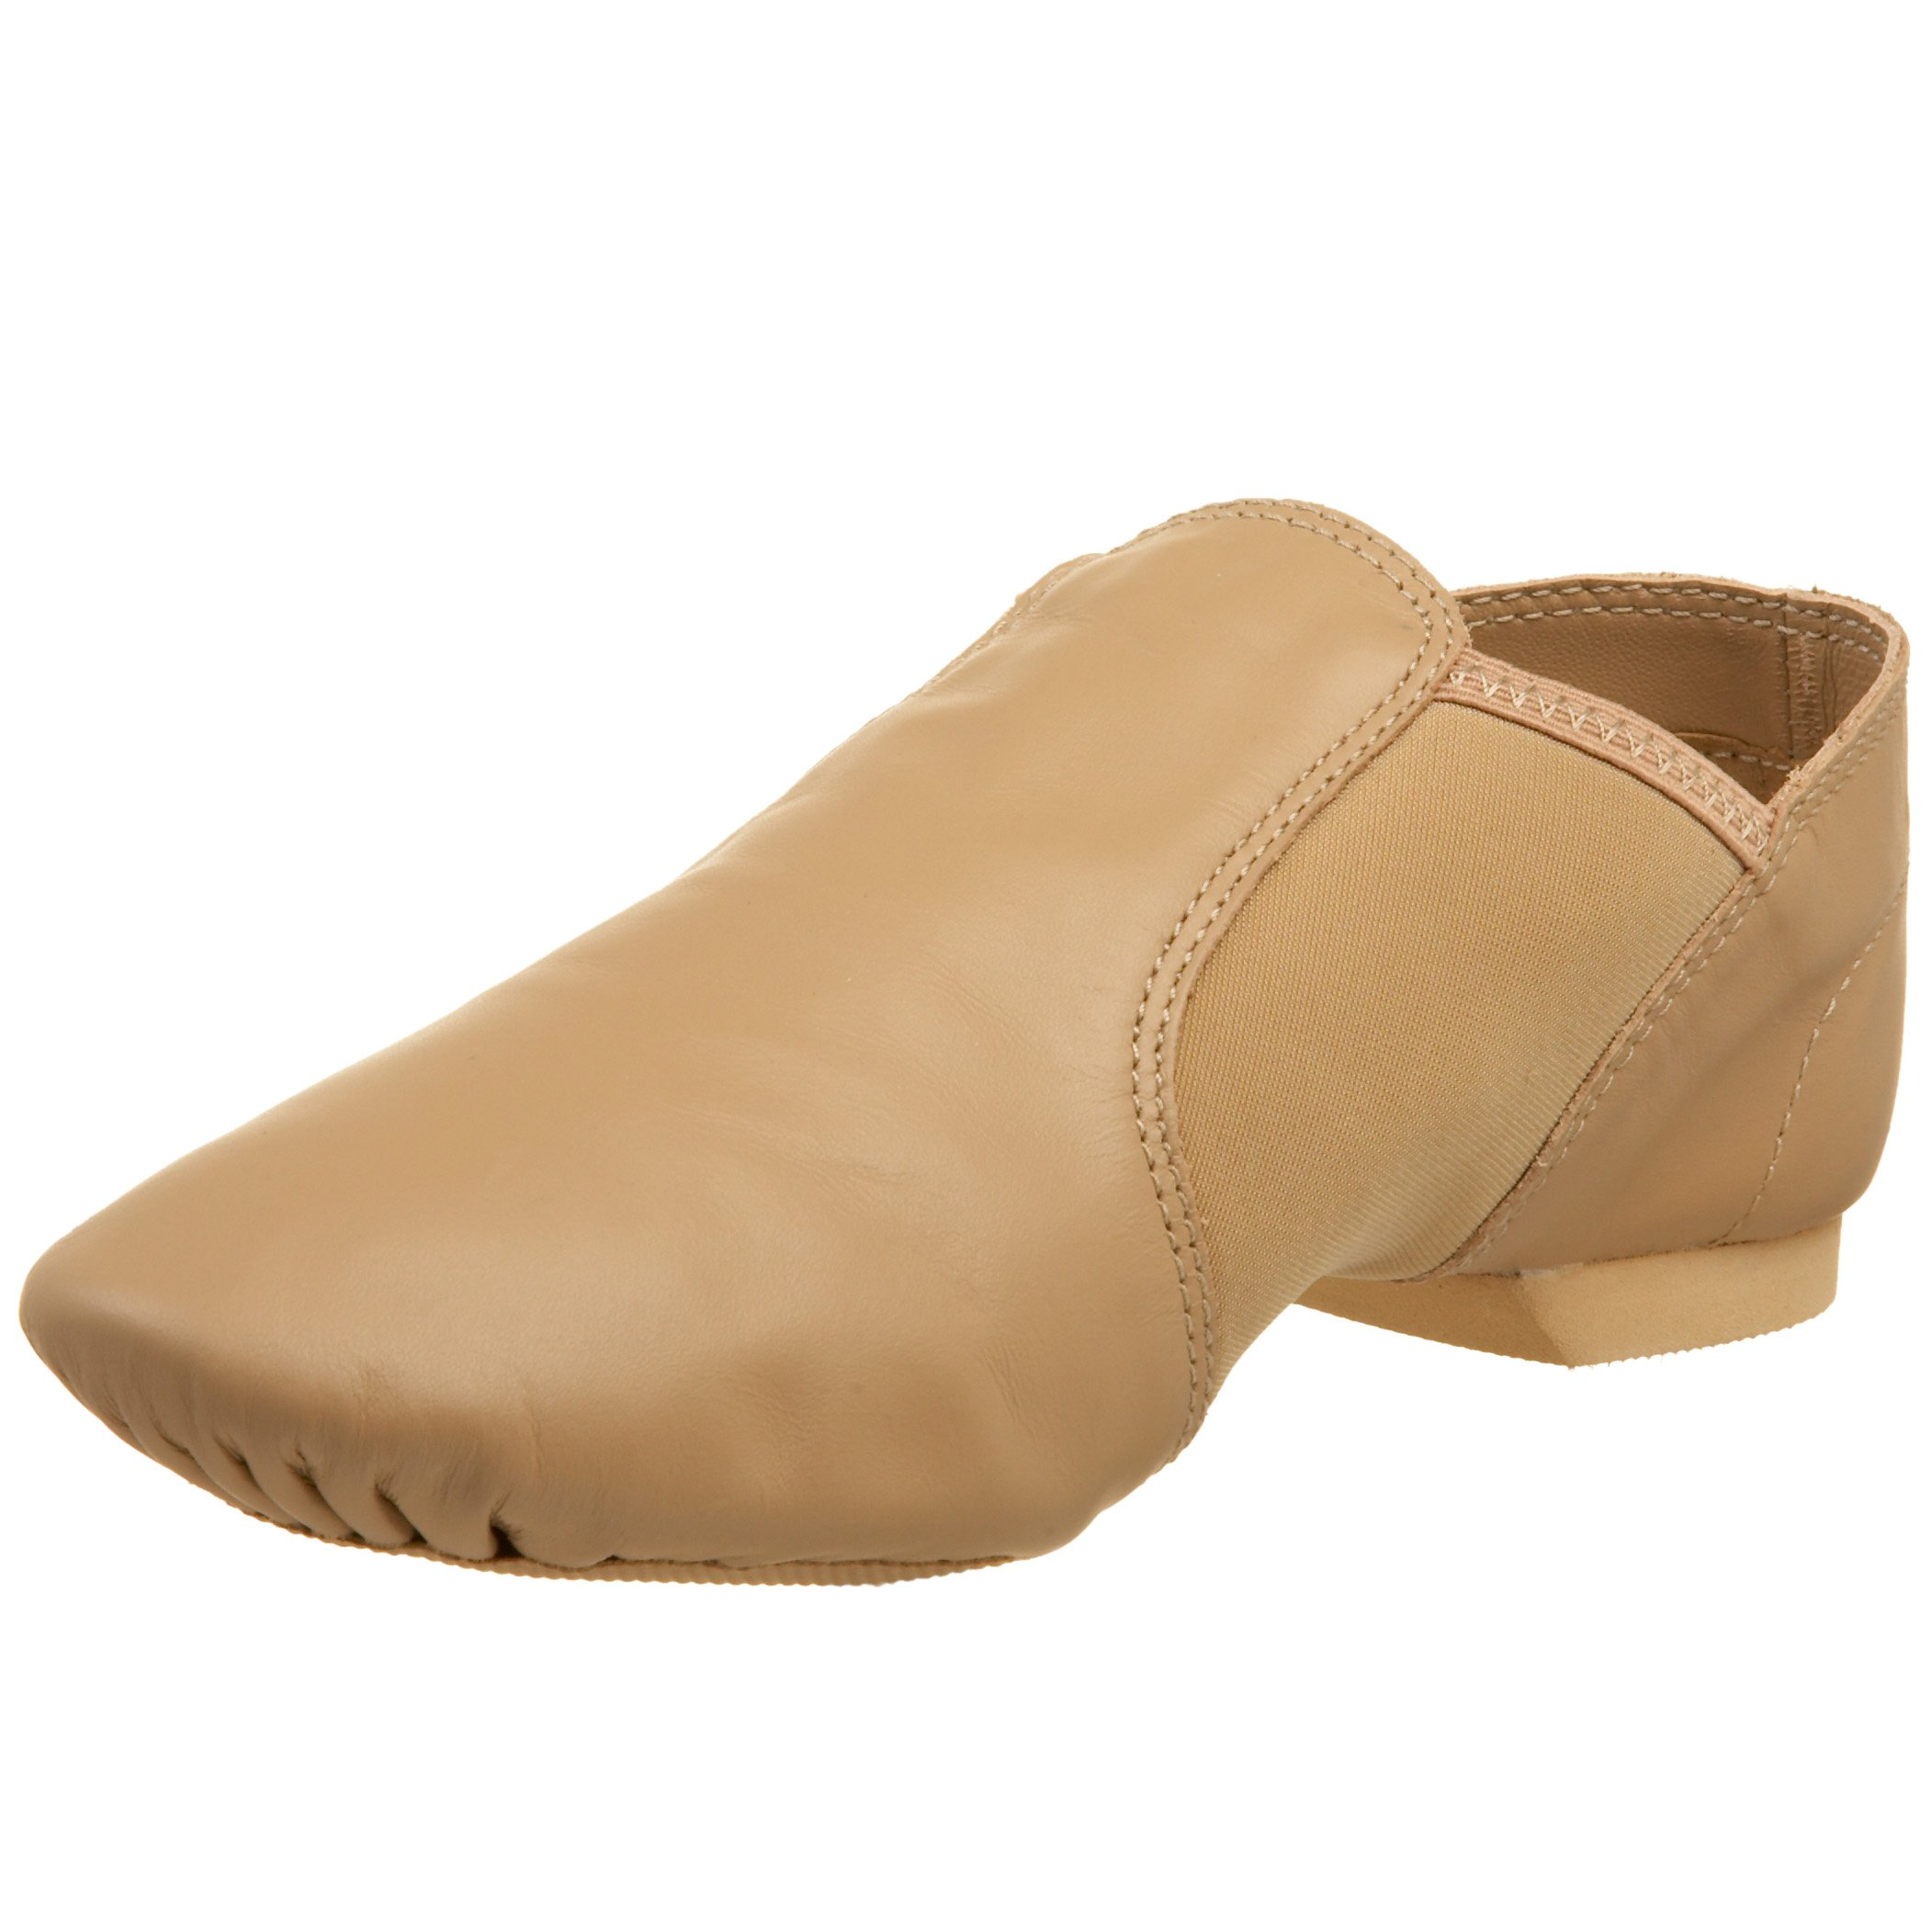 Capezio Women's Economy Jazz Slip On, Caramel, 9.5M US